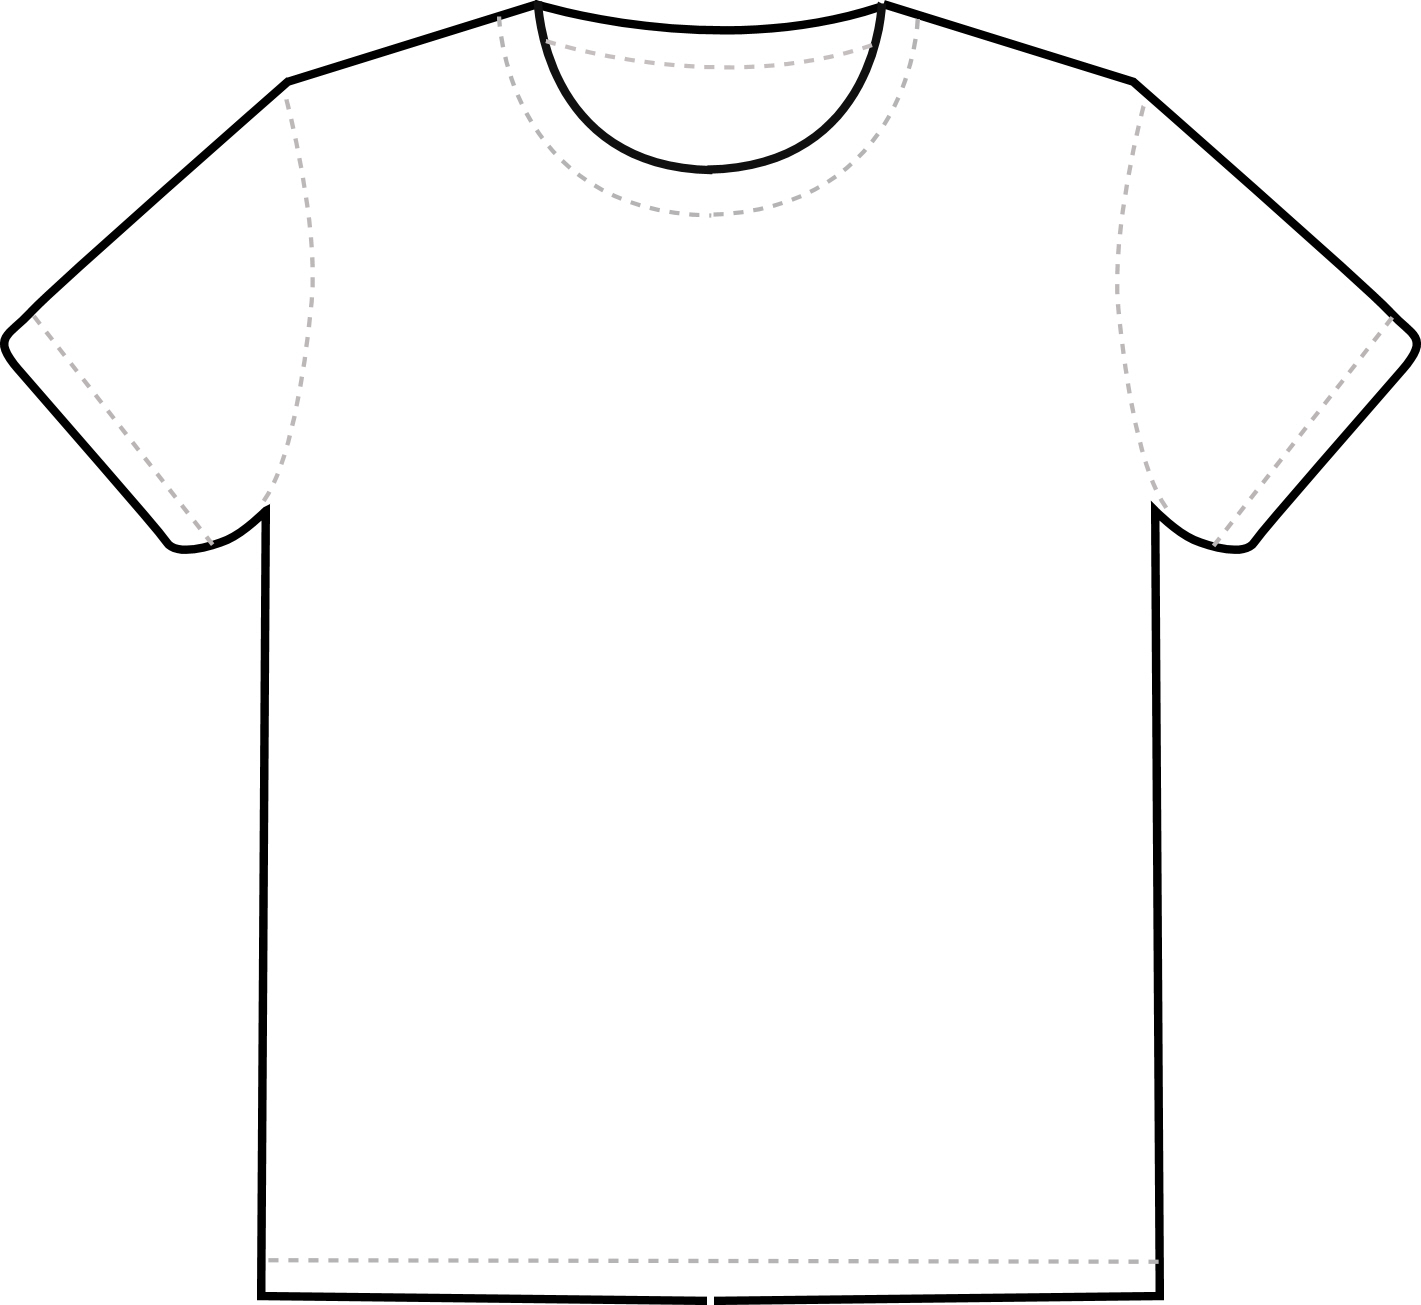 Blank T-shirt Outline #1663530 - Tshirt PNG Outline